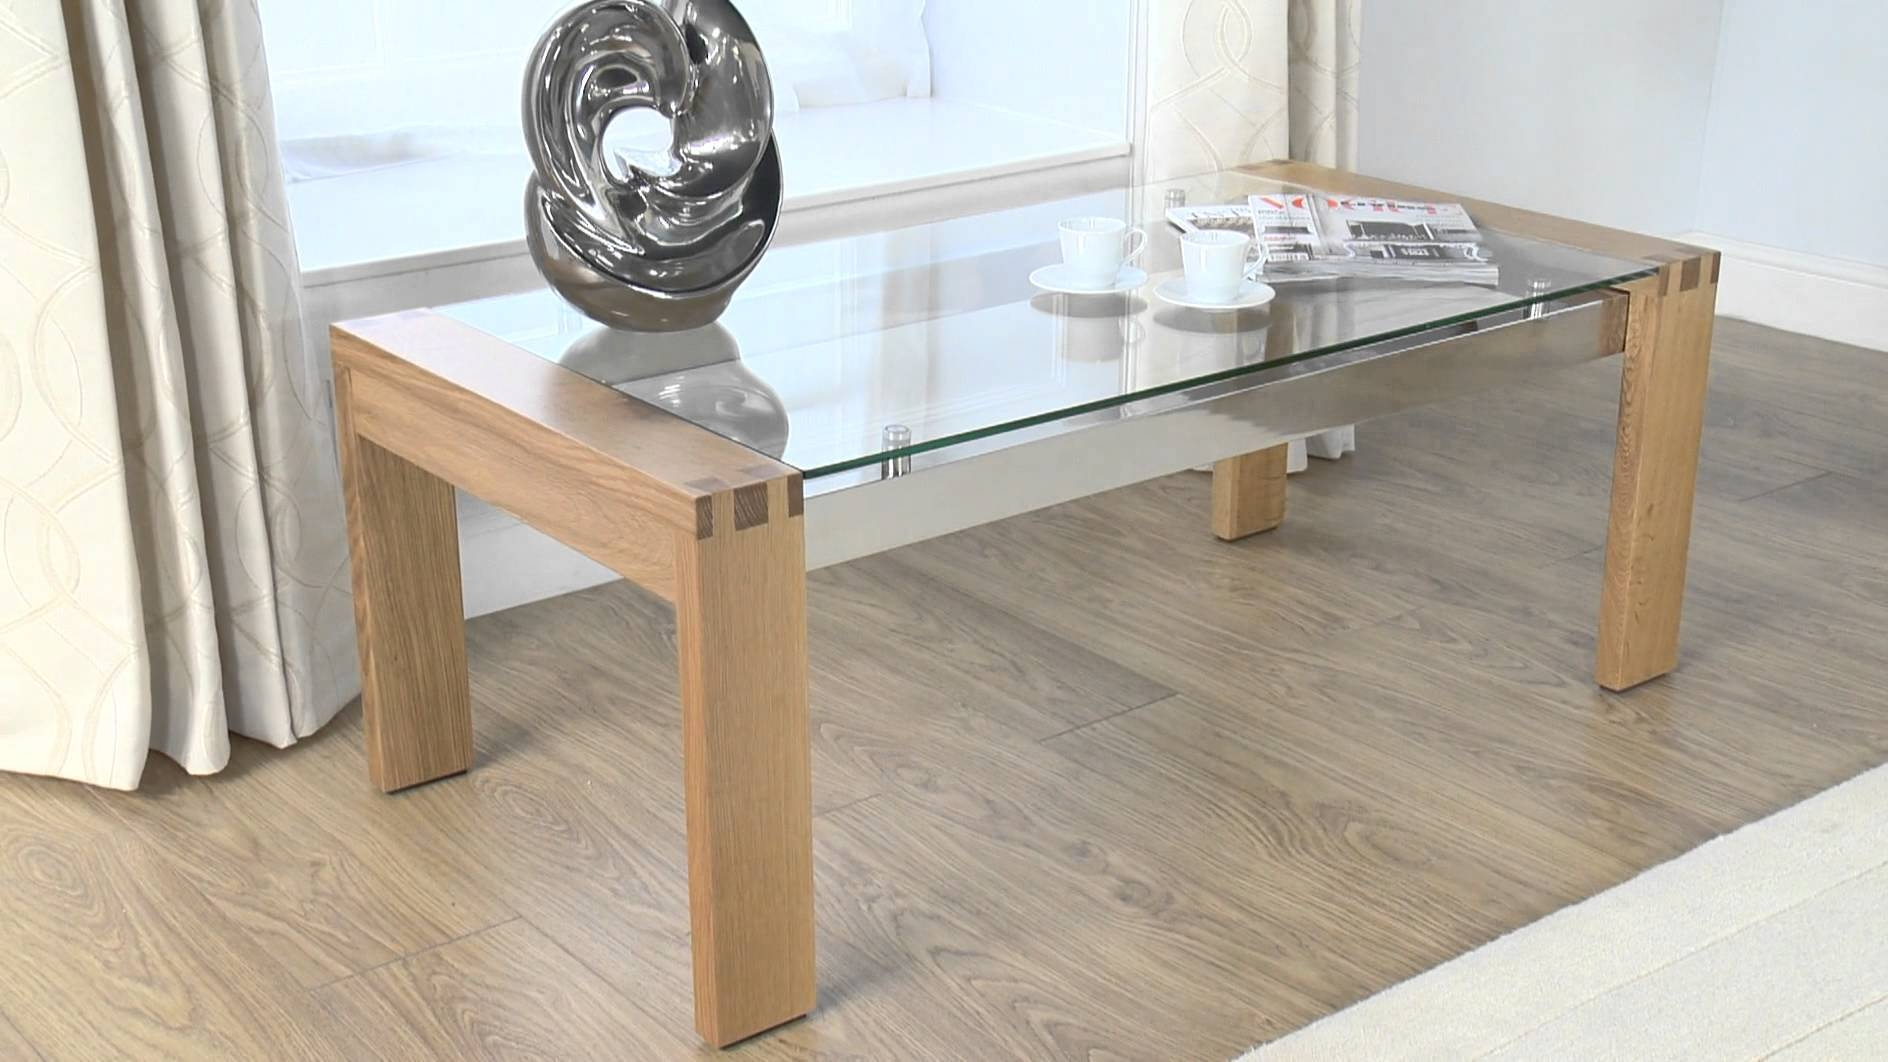 Glass Coffee Table: Cannes Glass/oak Coffee Table - Youtube in Oak and Glass Coffee Table (Image 10 of 15)